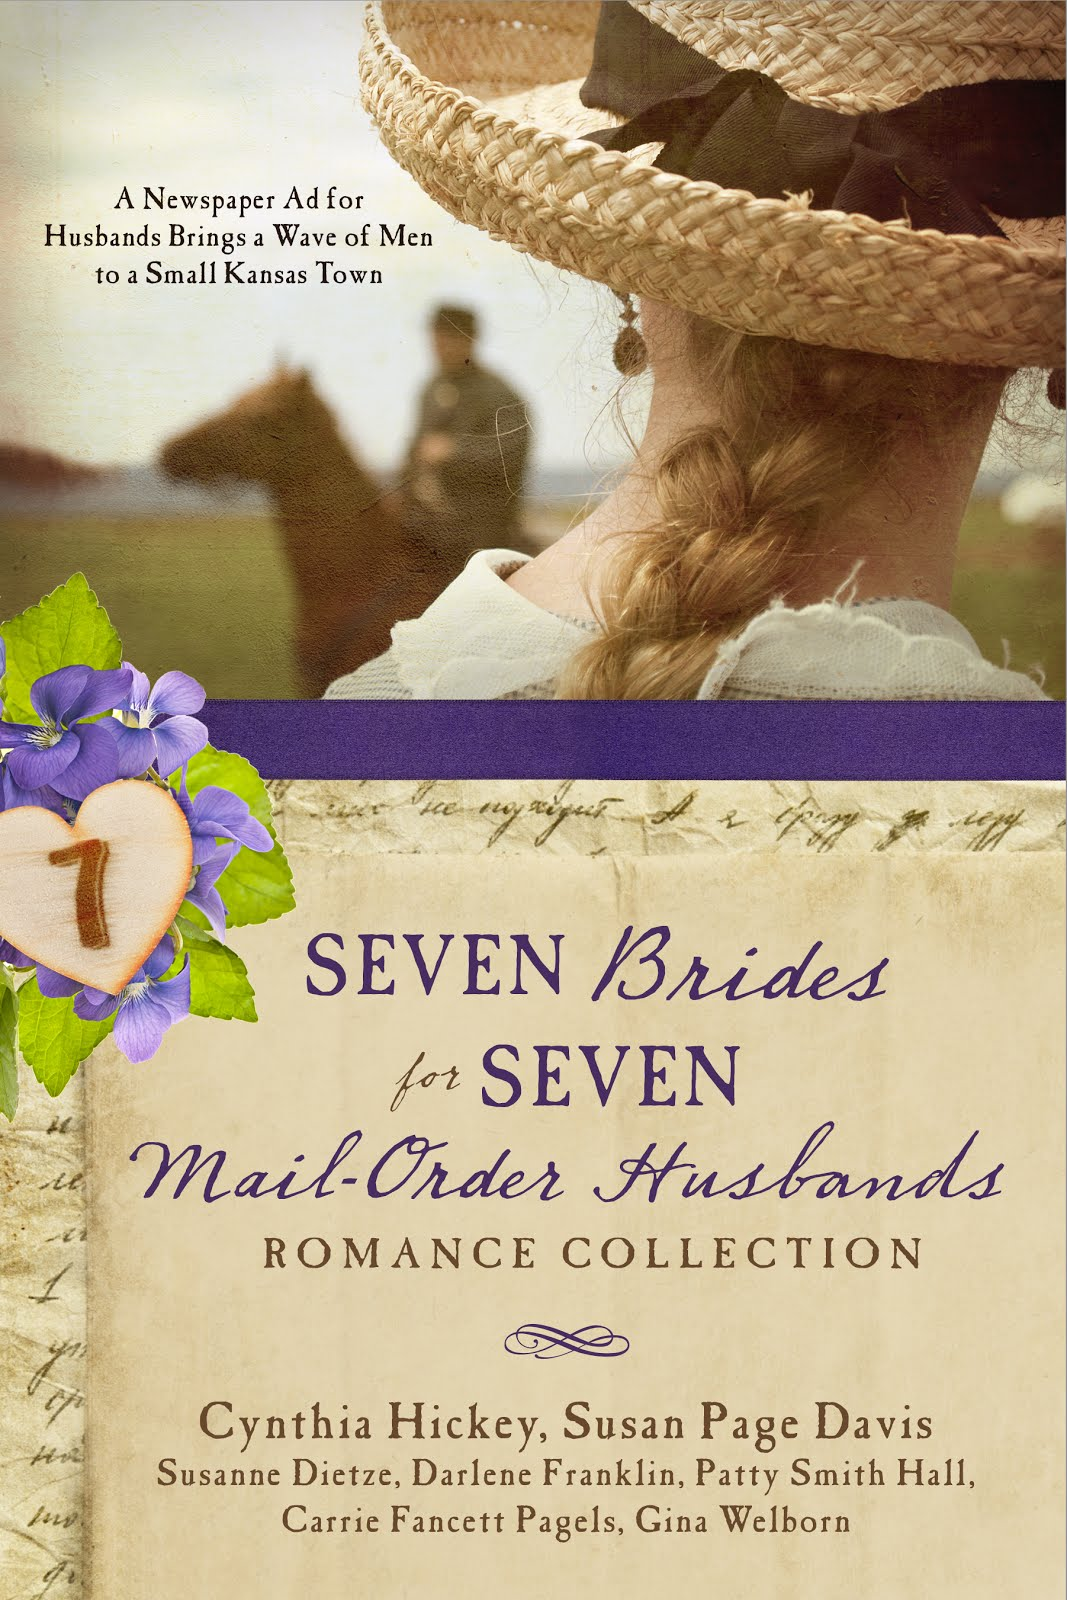 Seven Brides for Seven Mail Order Husbands